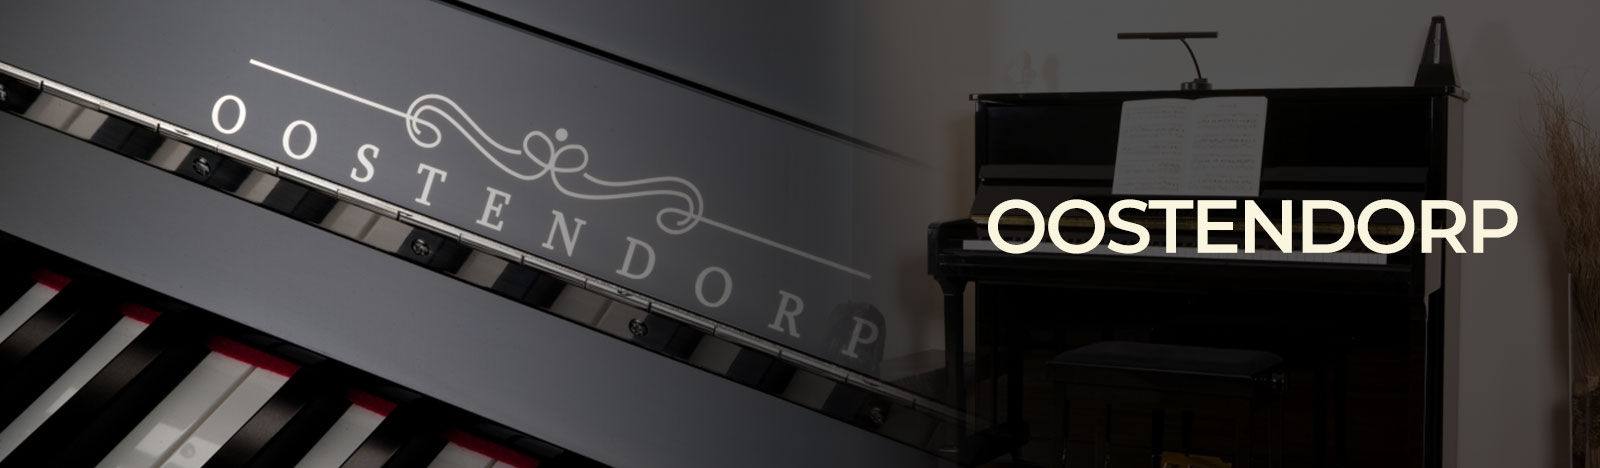 Oostendorp digitale piano